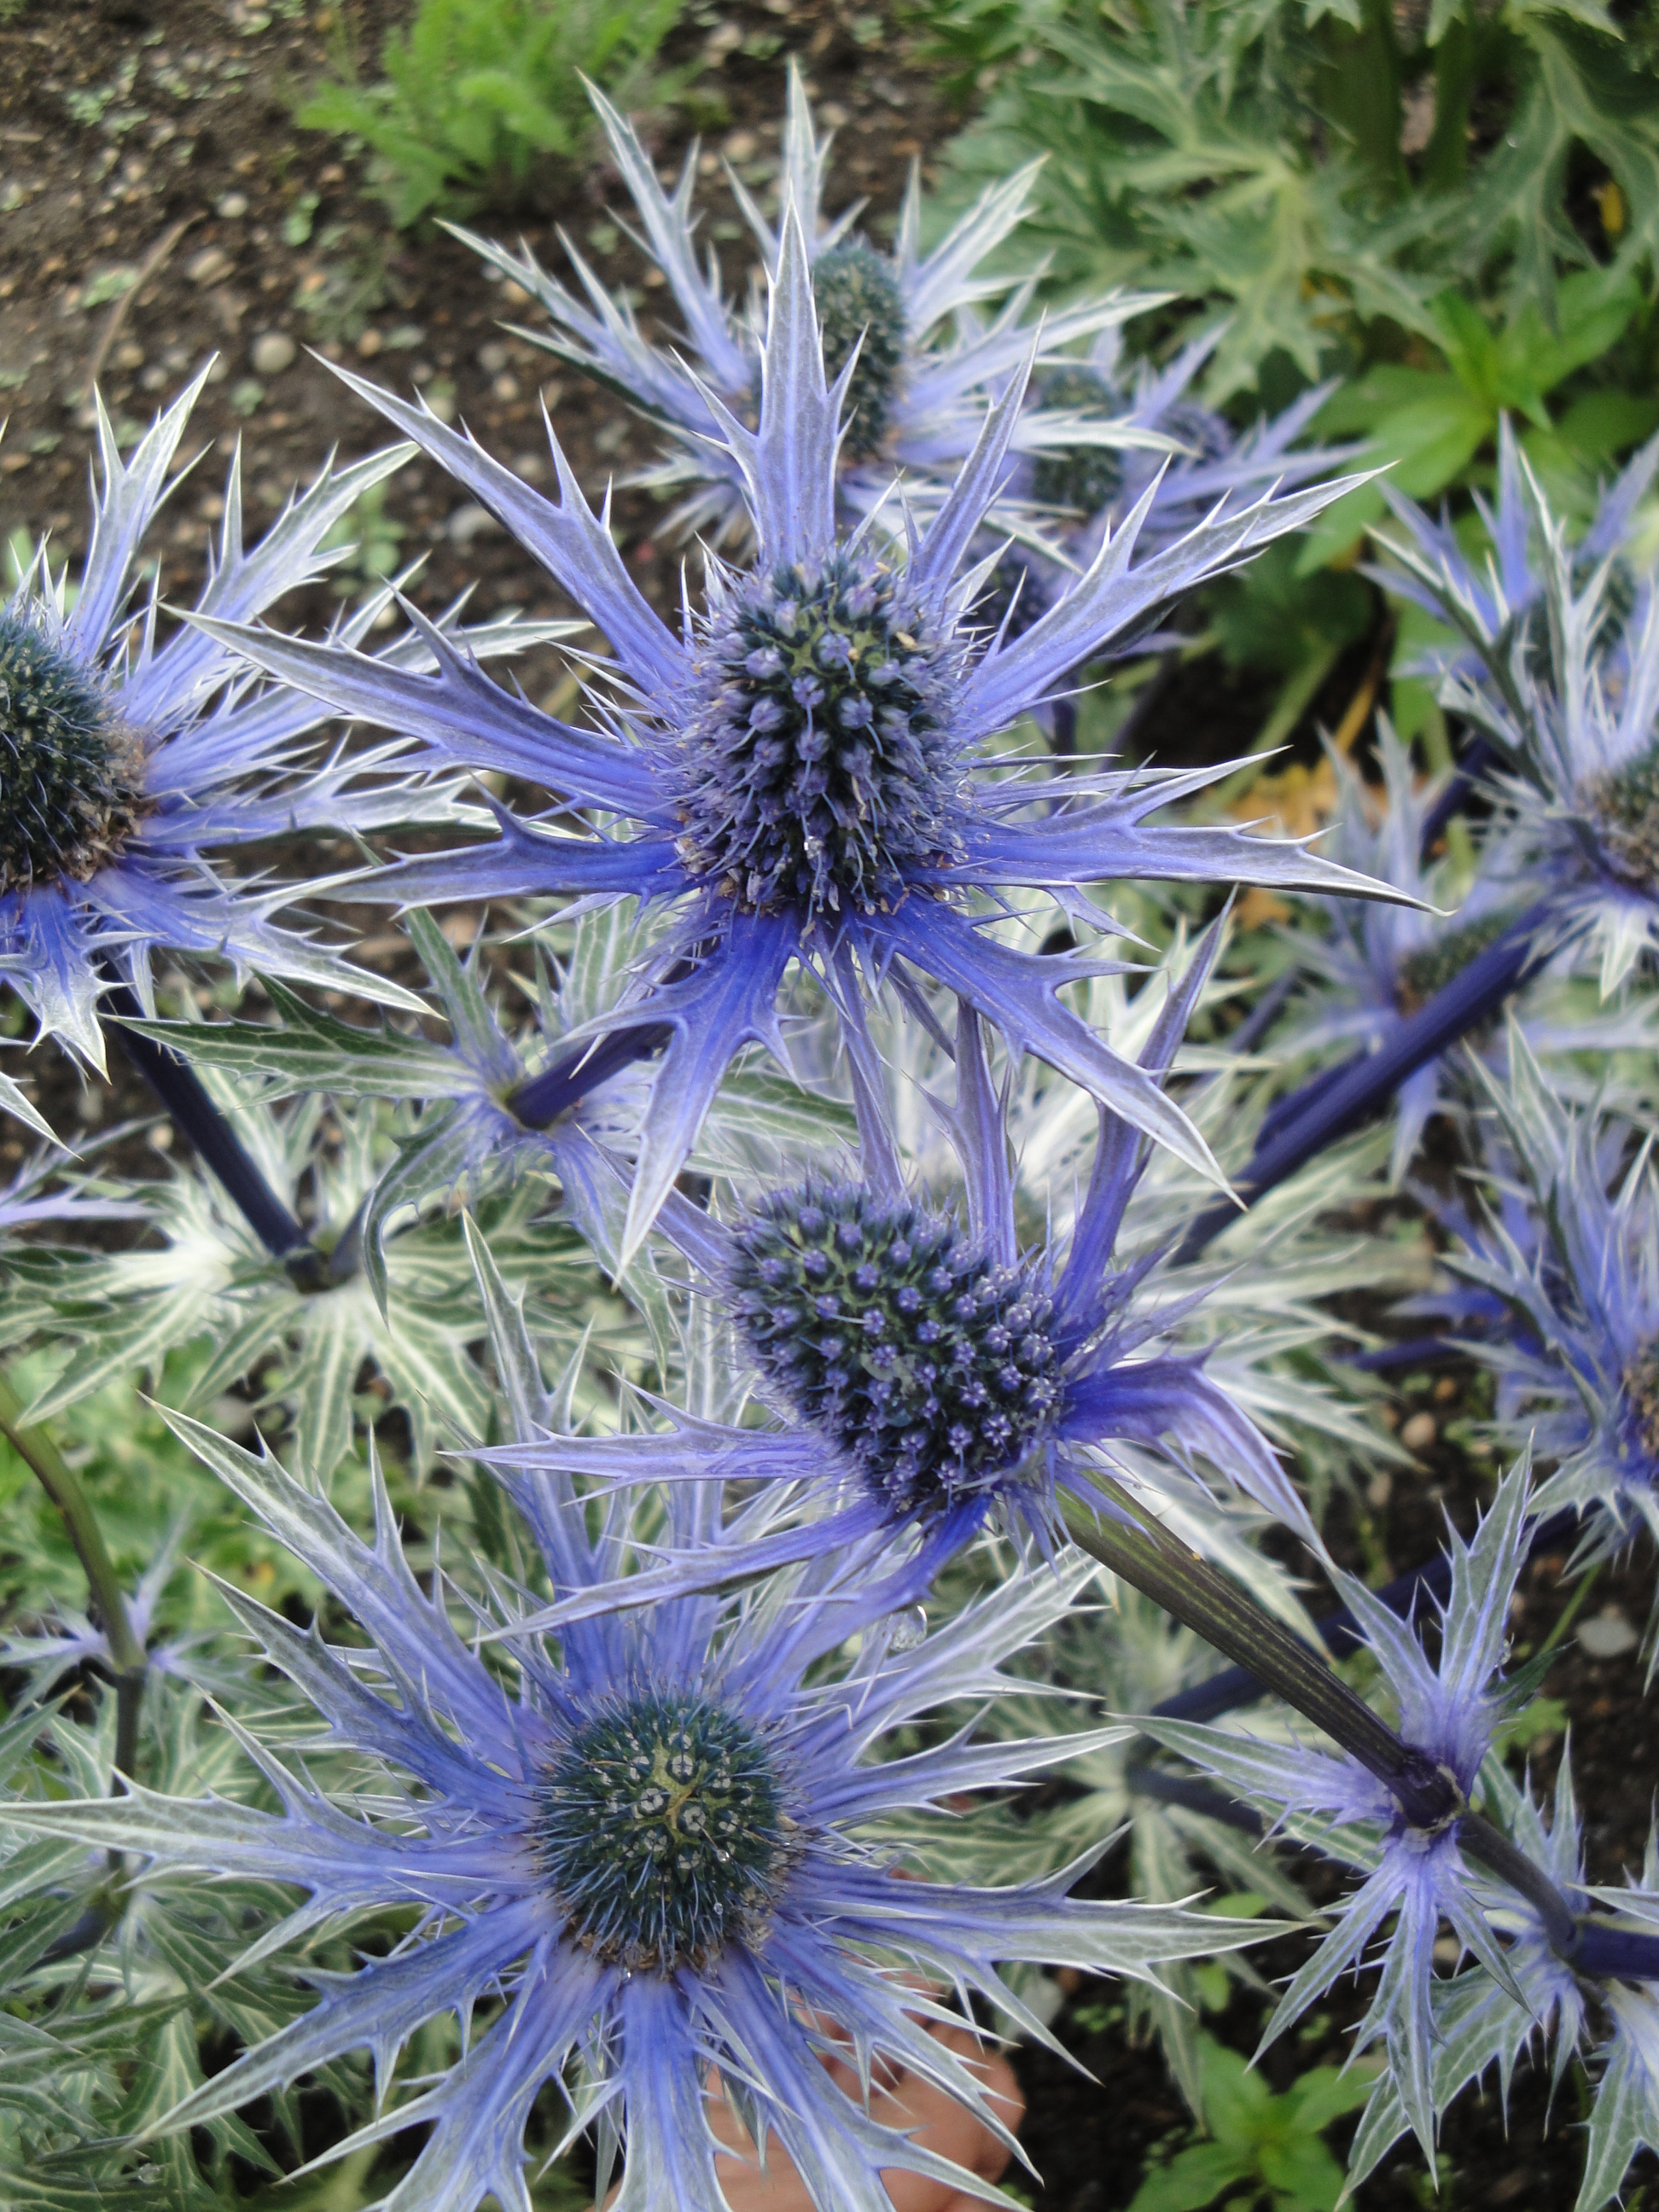 The More Common Name For This Flower Is Blue